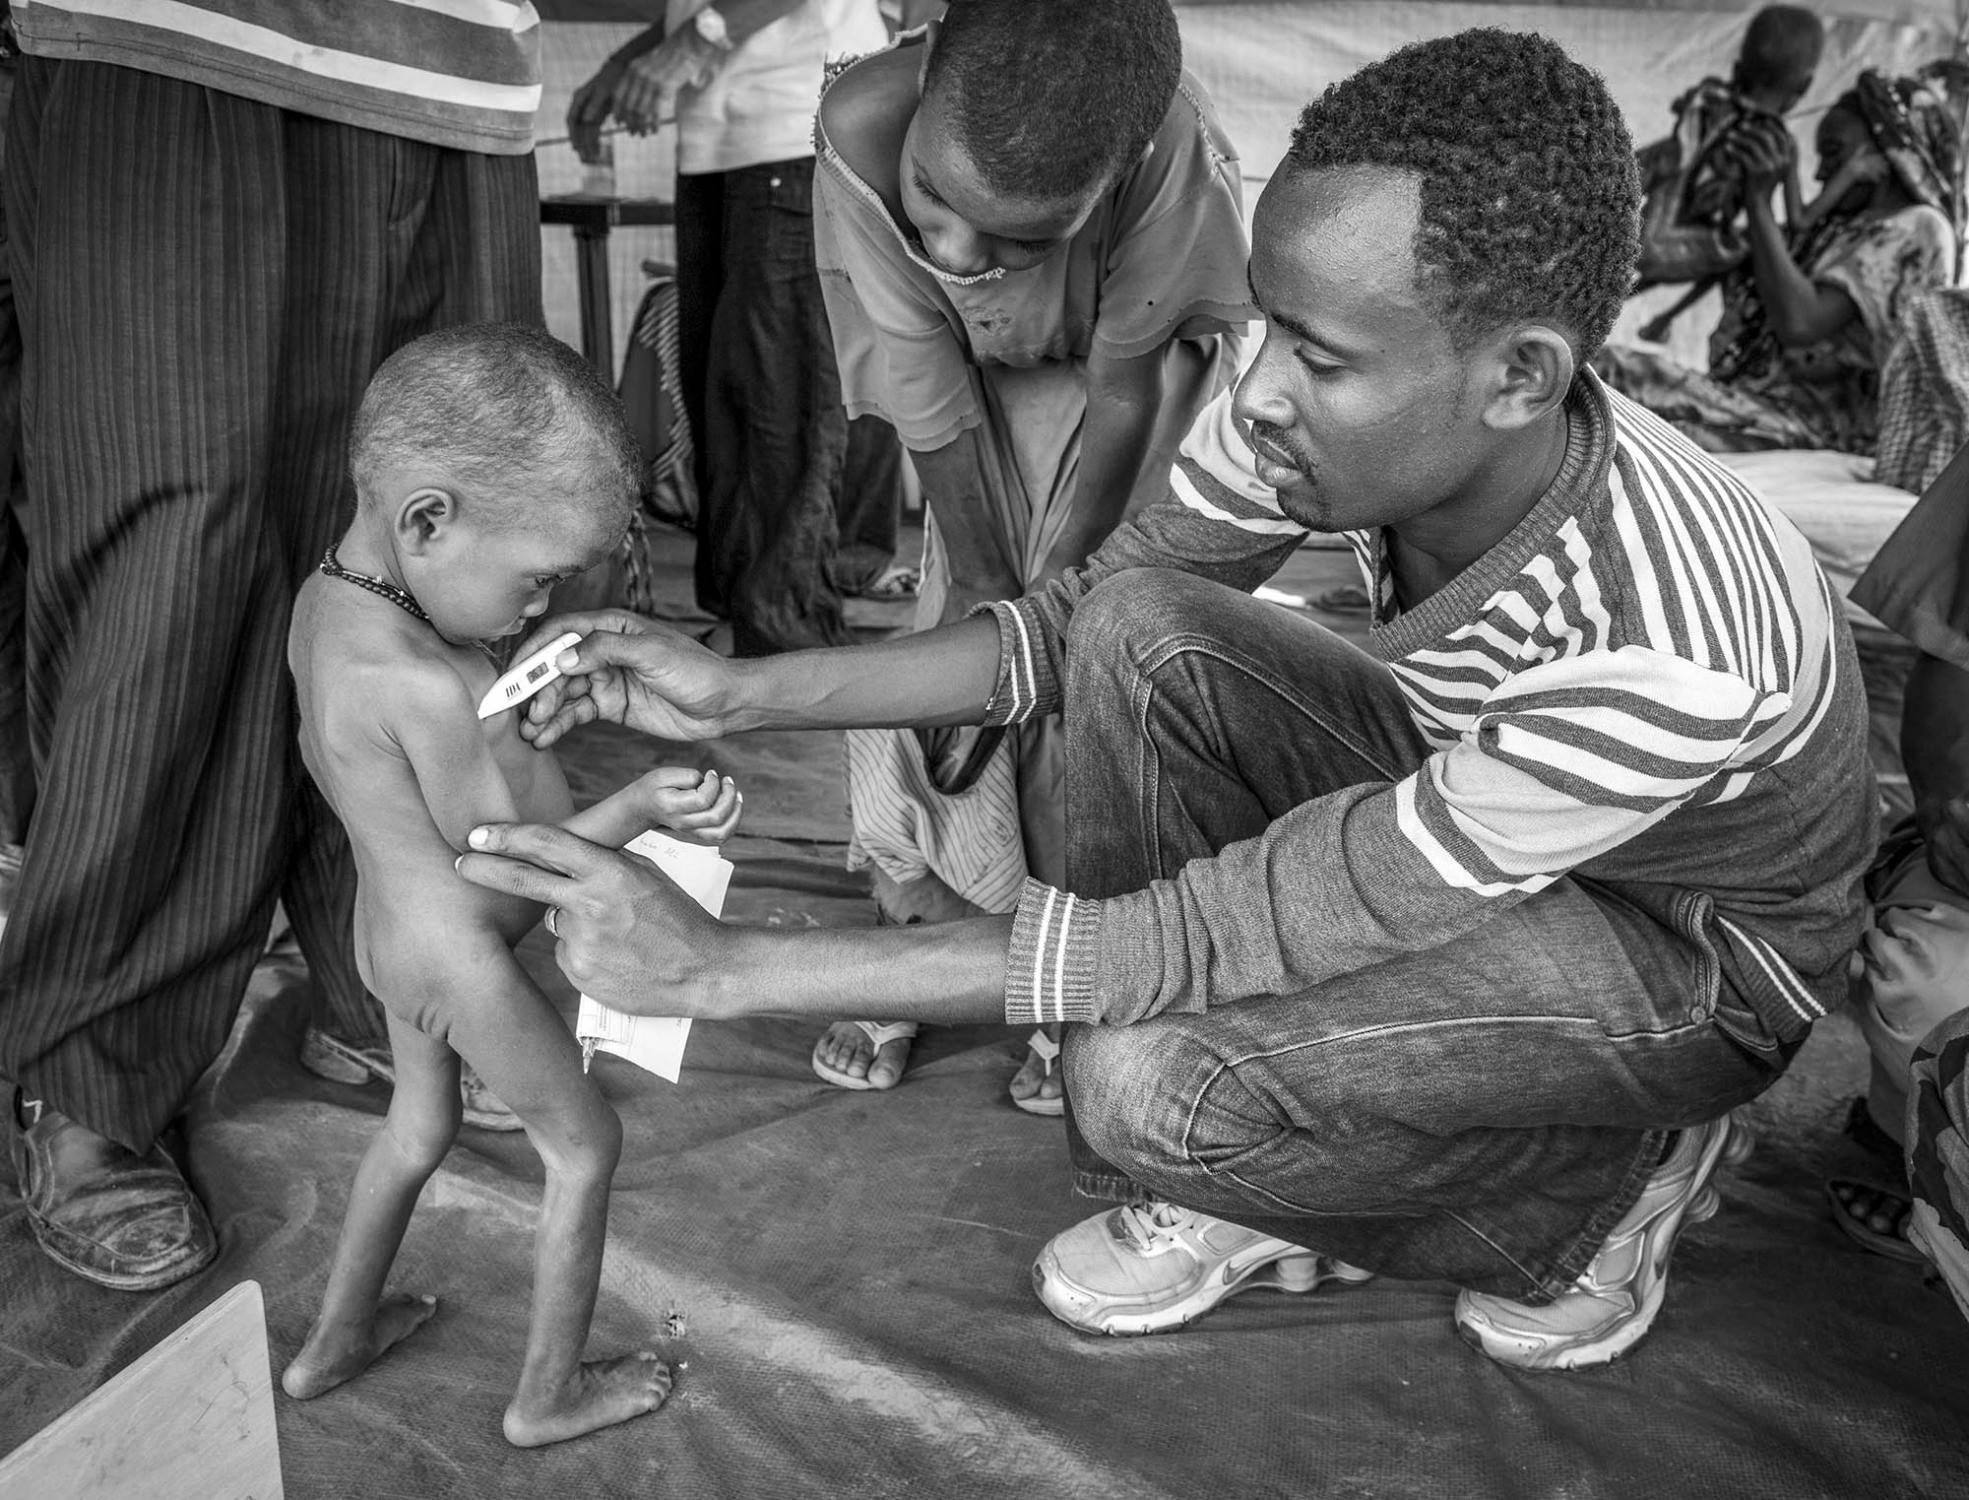 A malnourished Somali boy is being checked upon their arrival at clinic run by MSF (Doctors without Borders) in Malkadida Refugee Camp in southeastern Ethiopia, a few kilometers from Somalia/Ethiopia border, August 12, 2011.